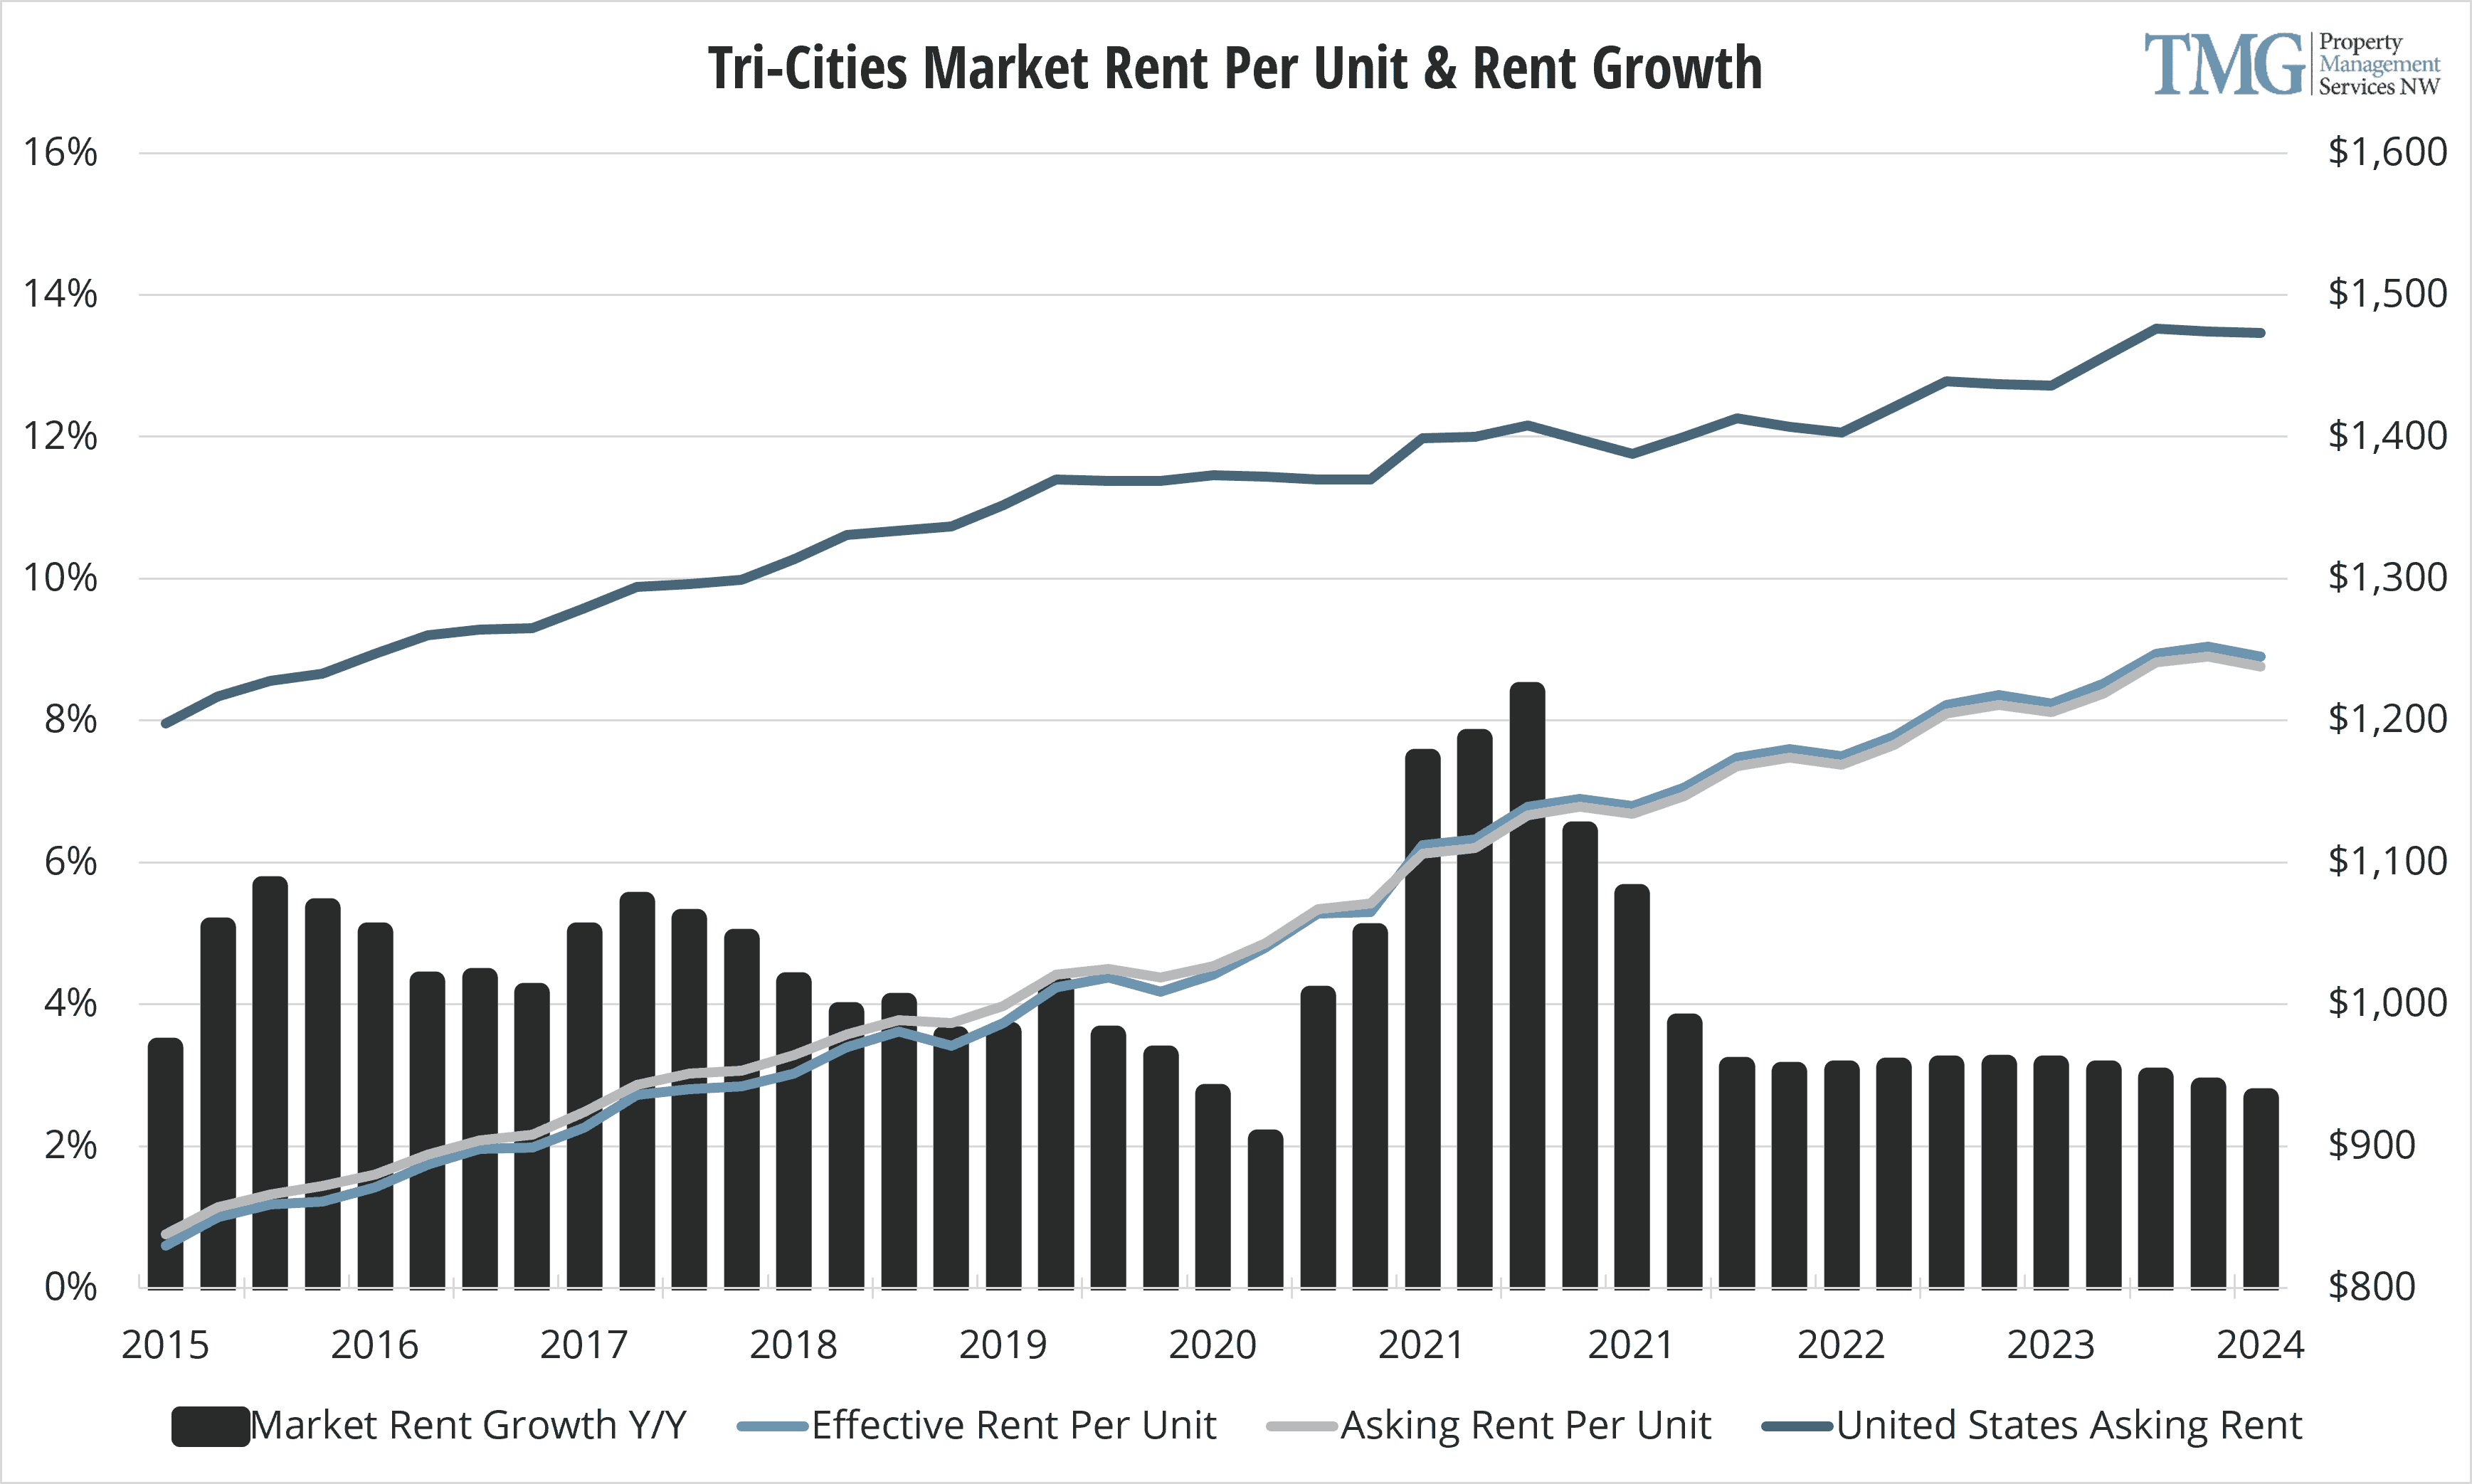 Tri-Cities Q1 2021 Rent Per Unit and Rent Growth